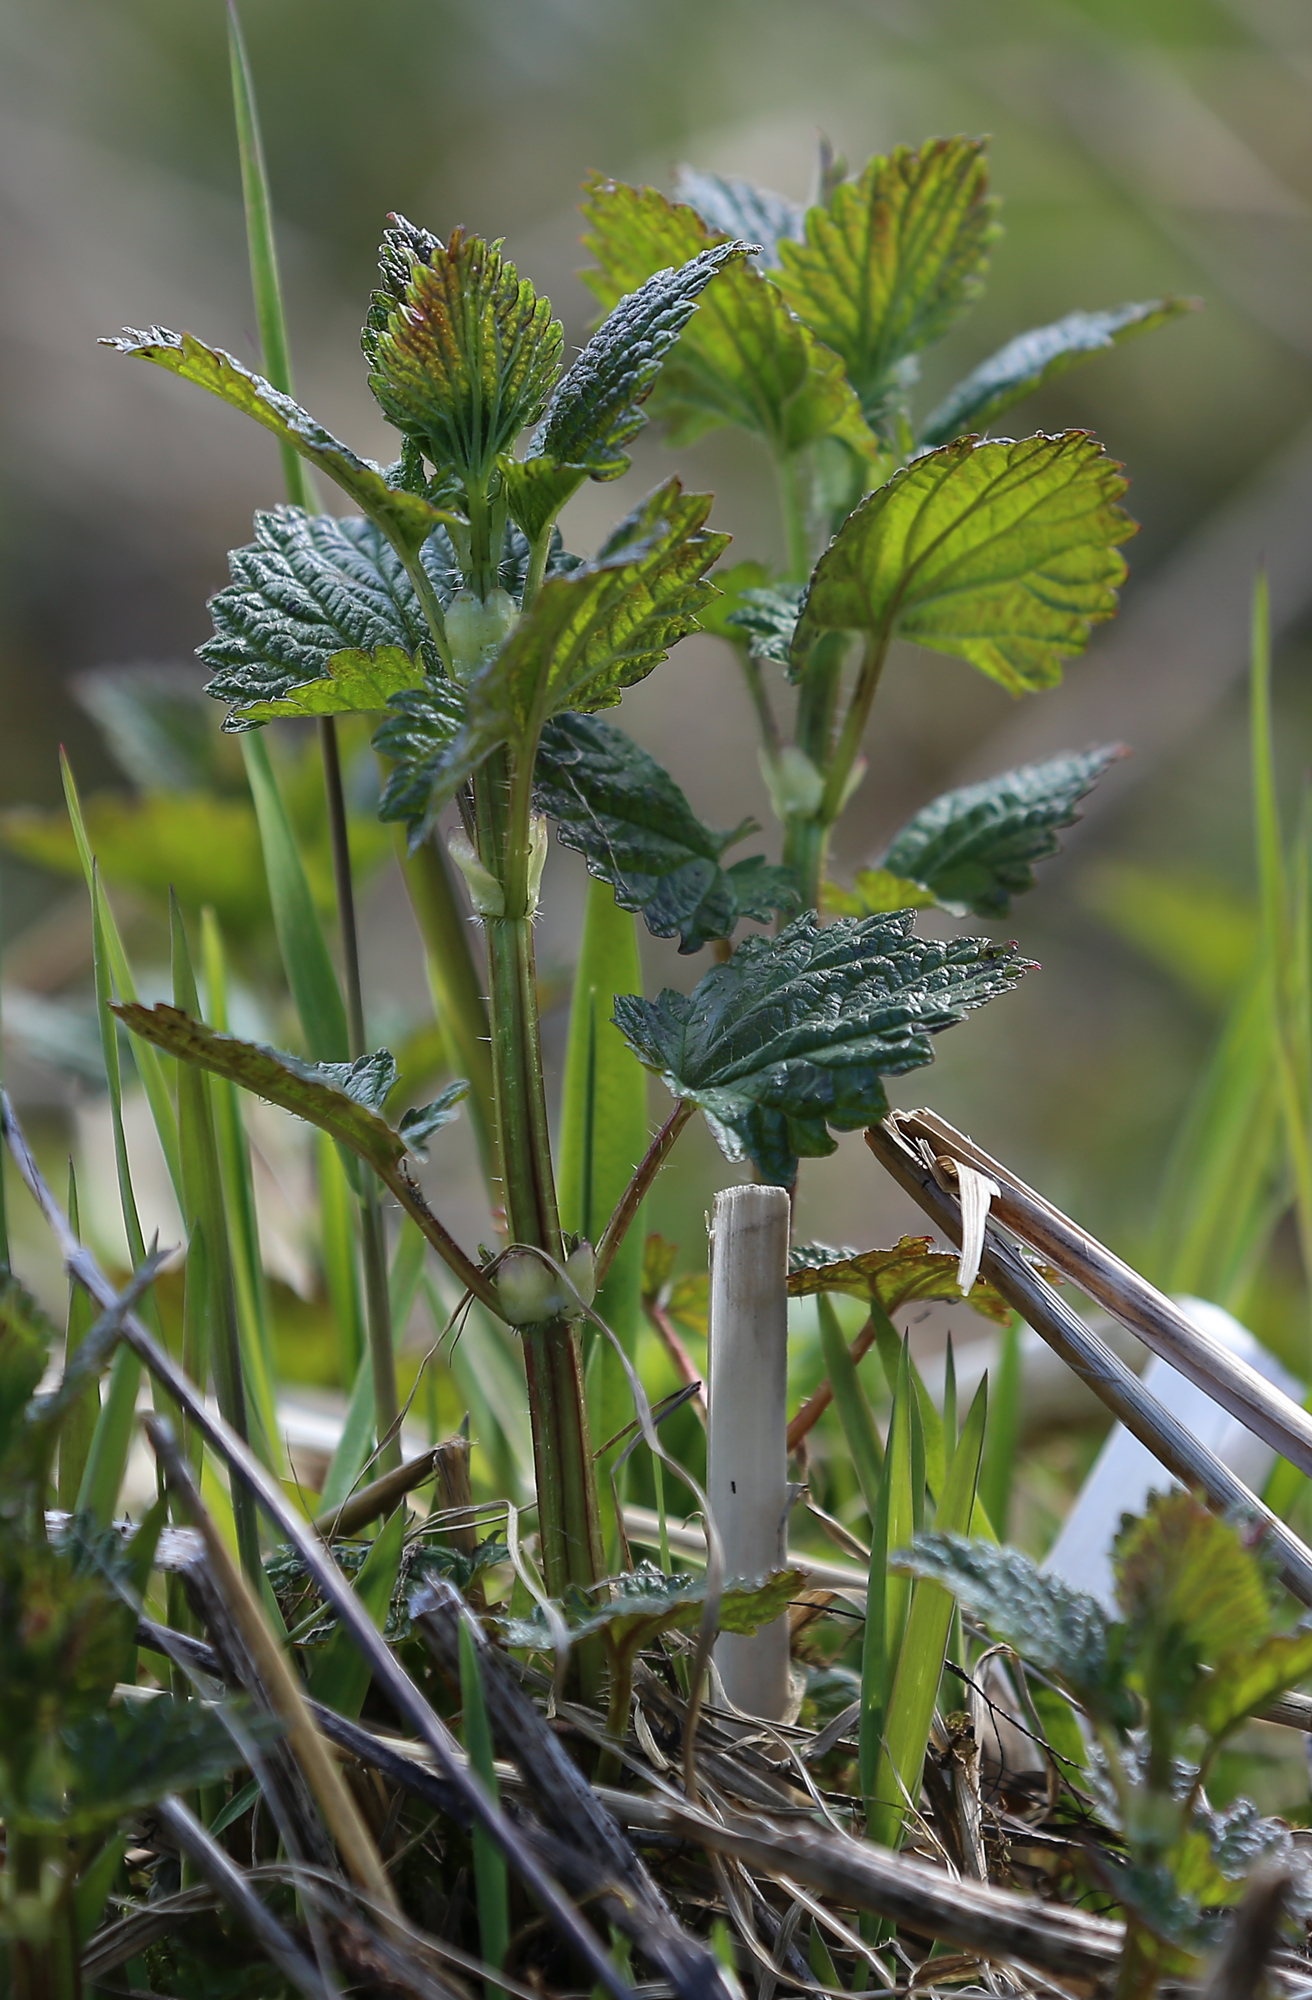 Young nettle plants found near a river.